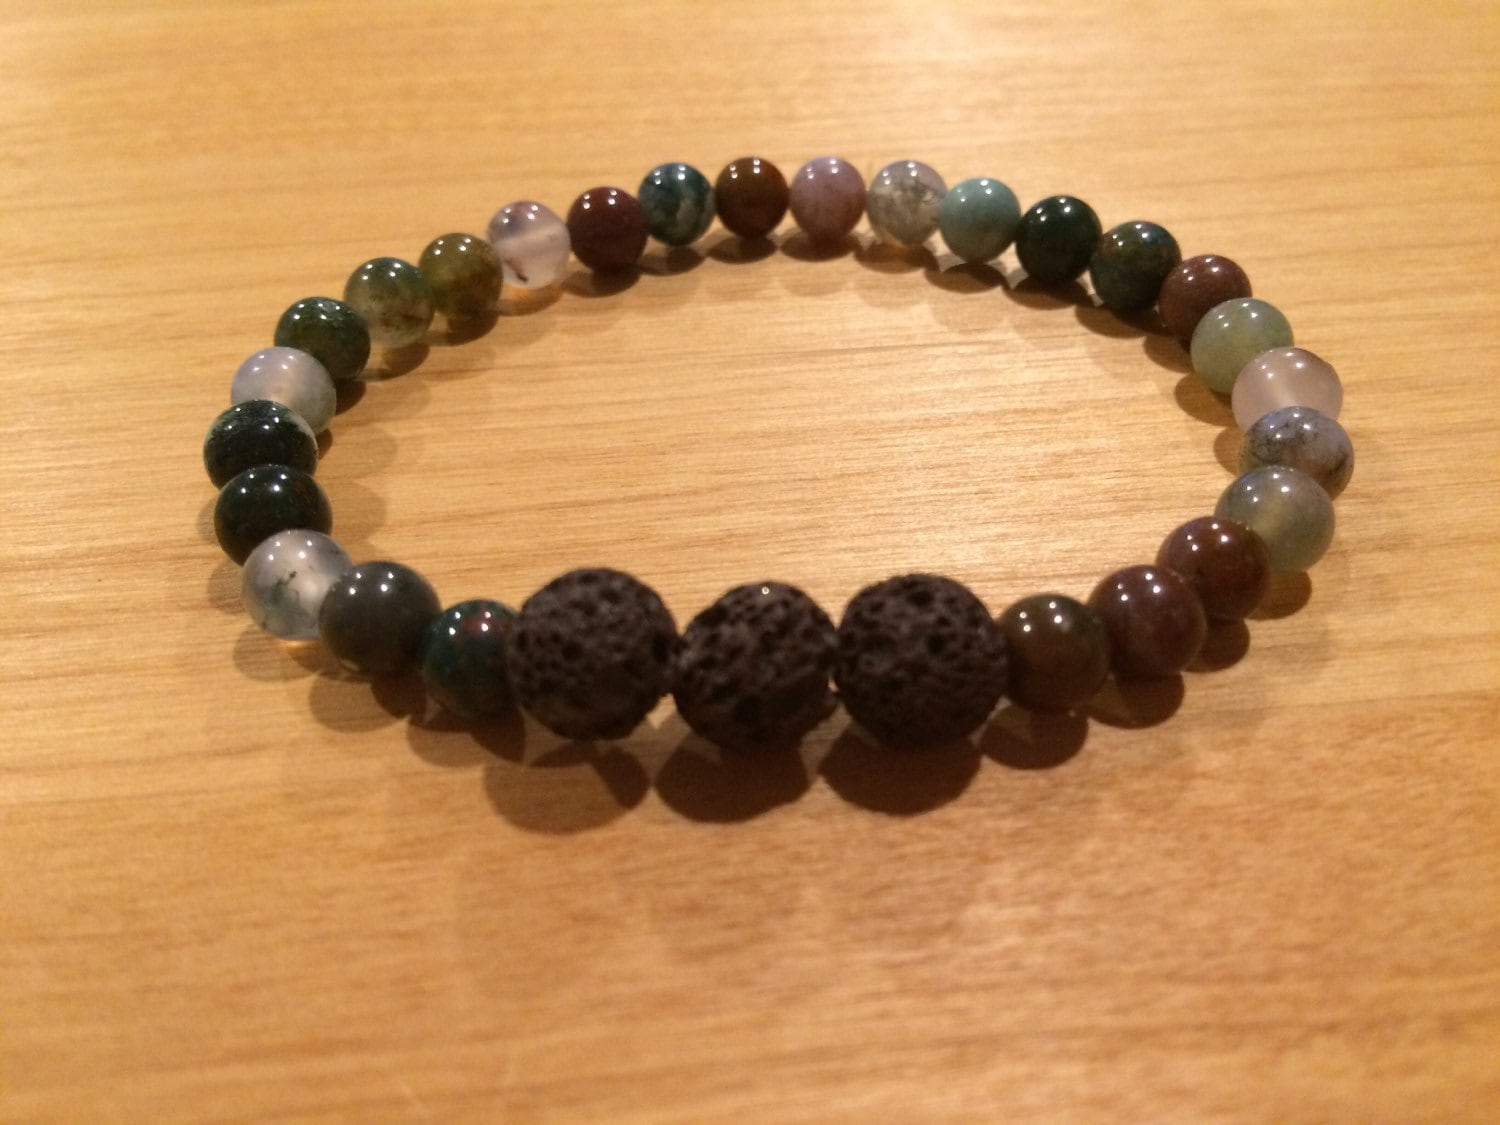 Essential Oil Diffuser Bracelet By Purplegiraffestore On Etsy